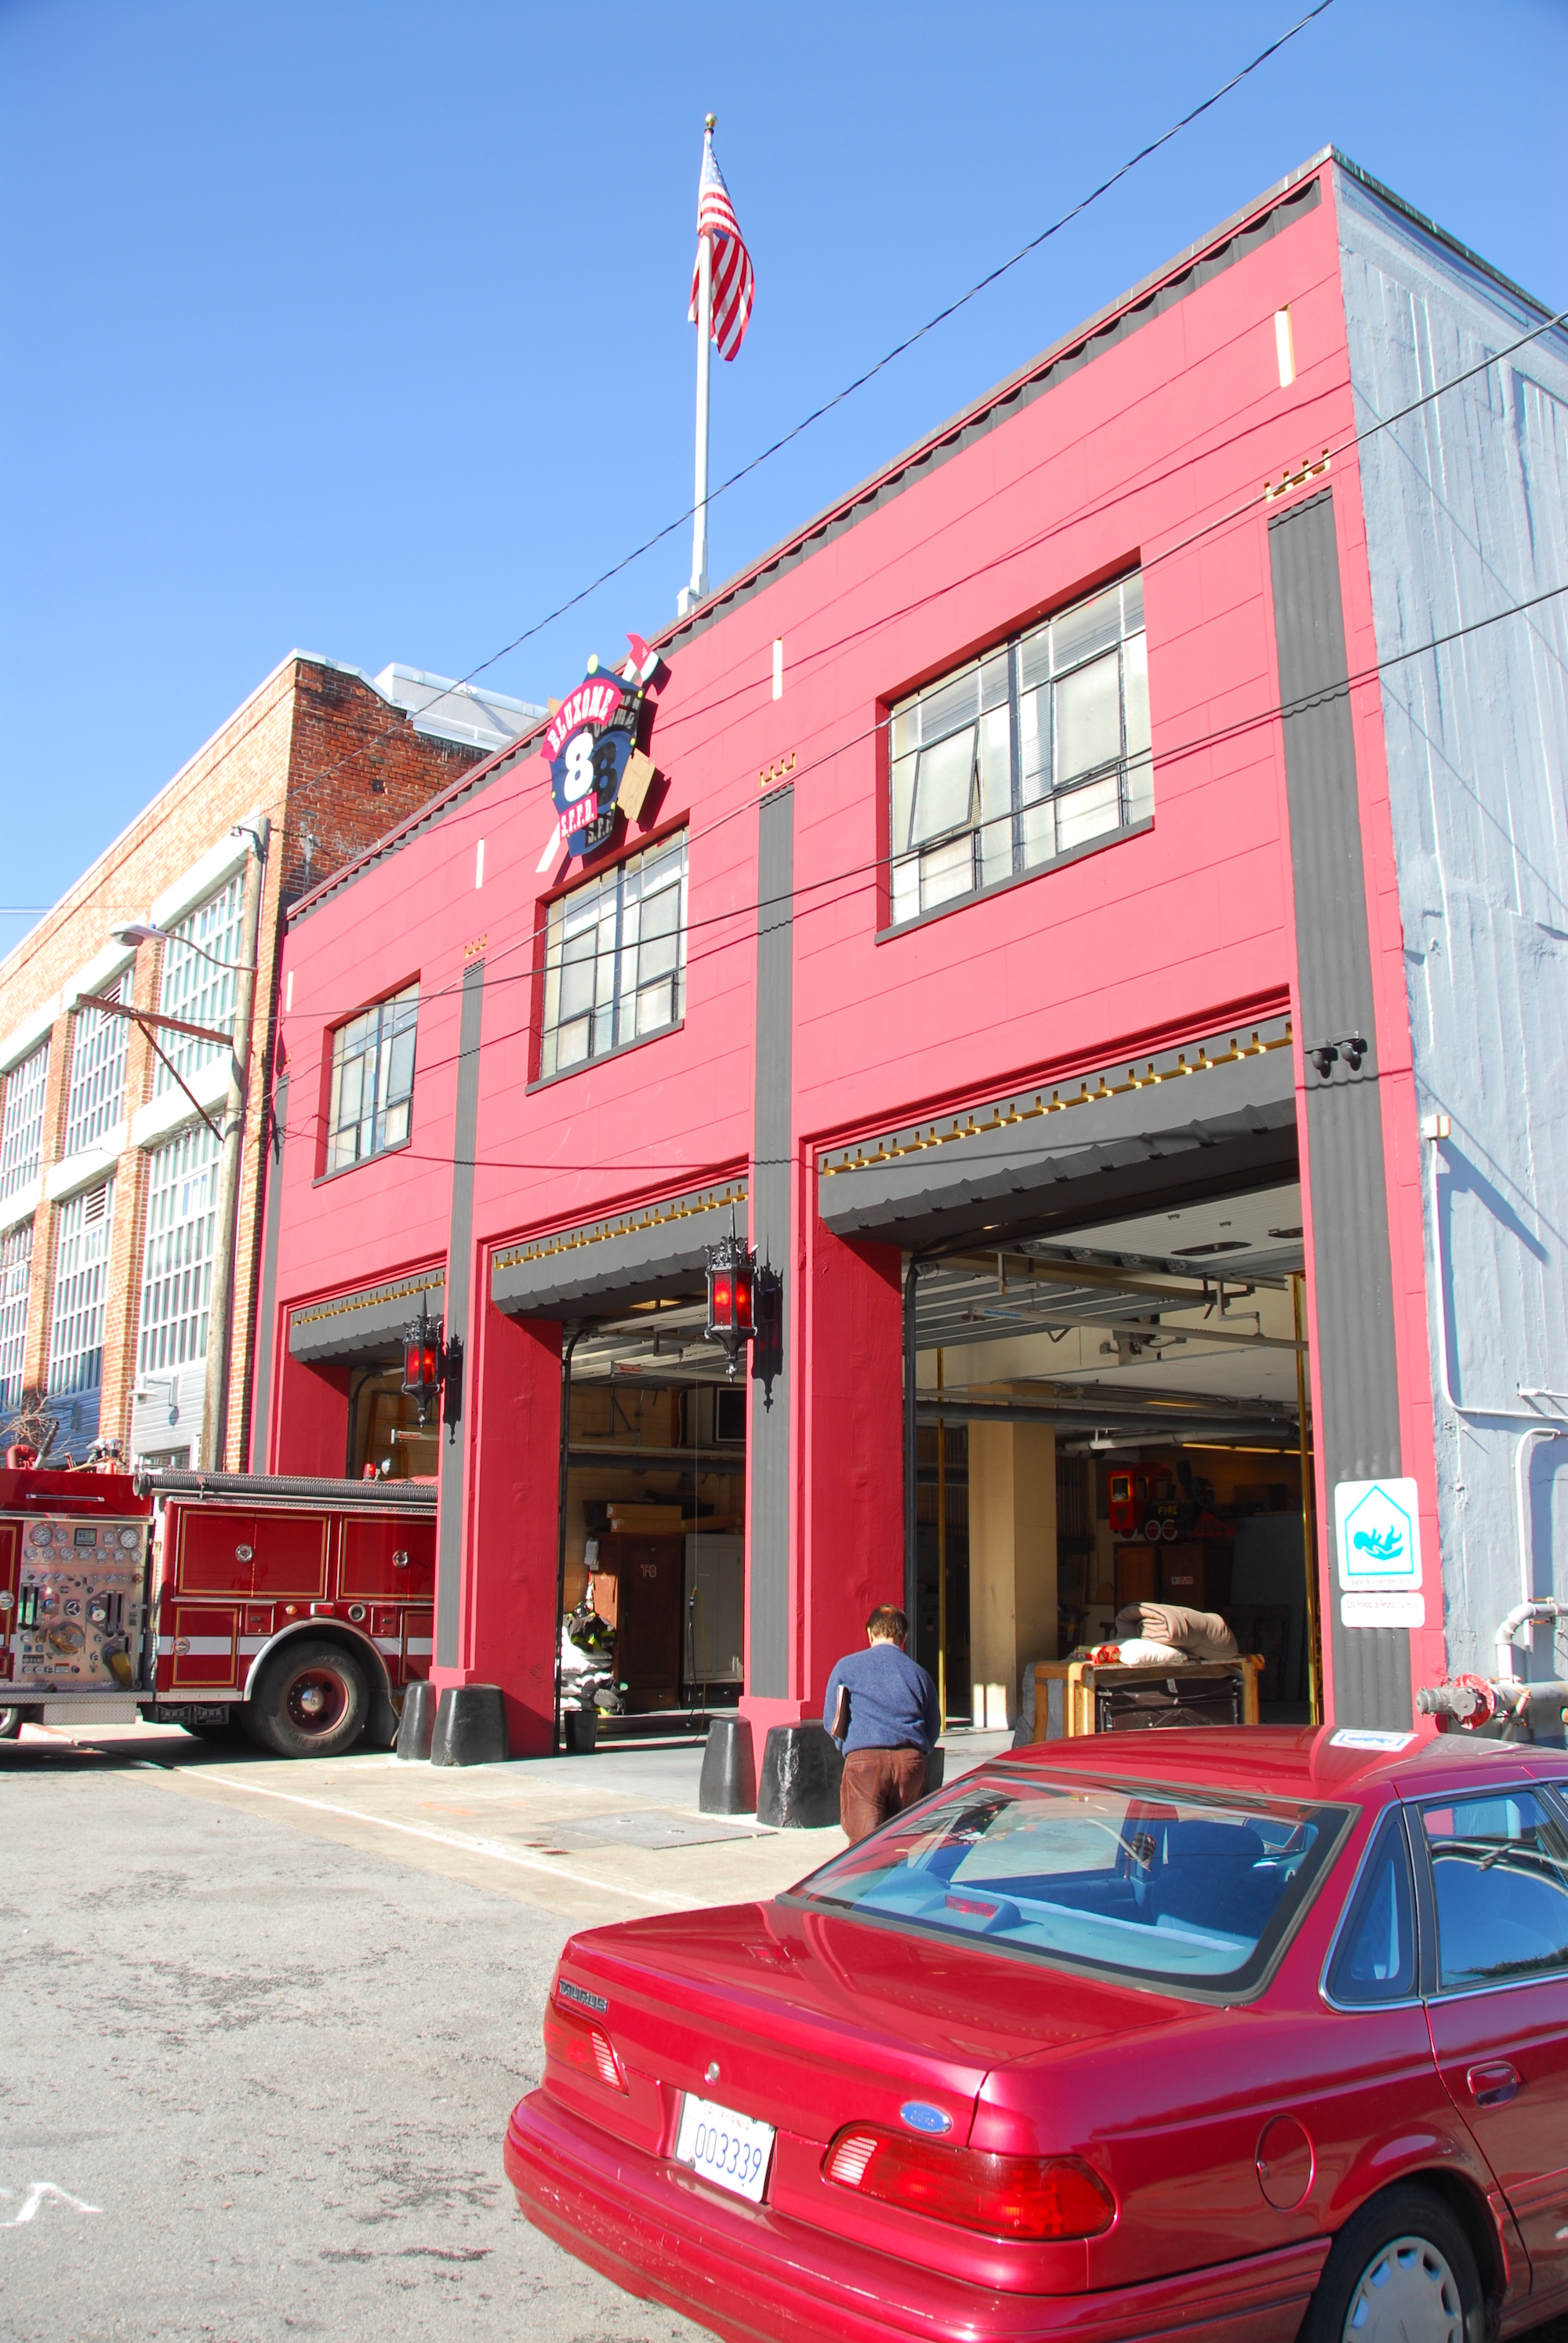 SFFD Fire Station